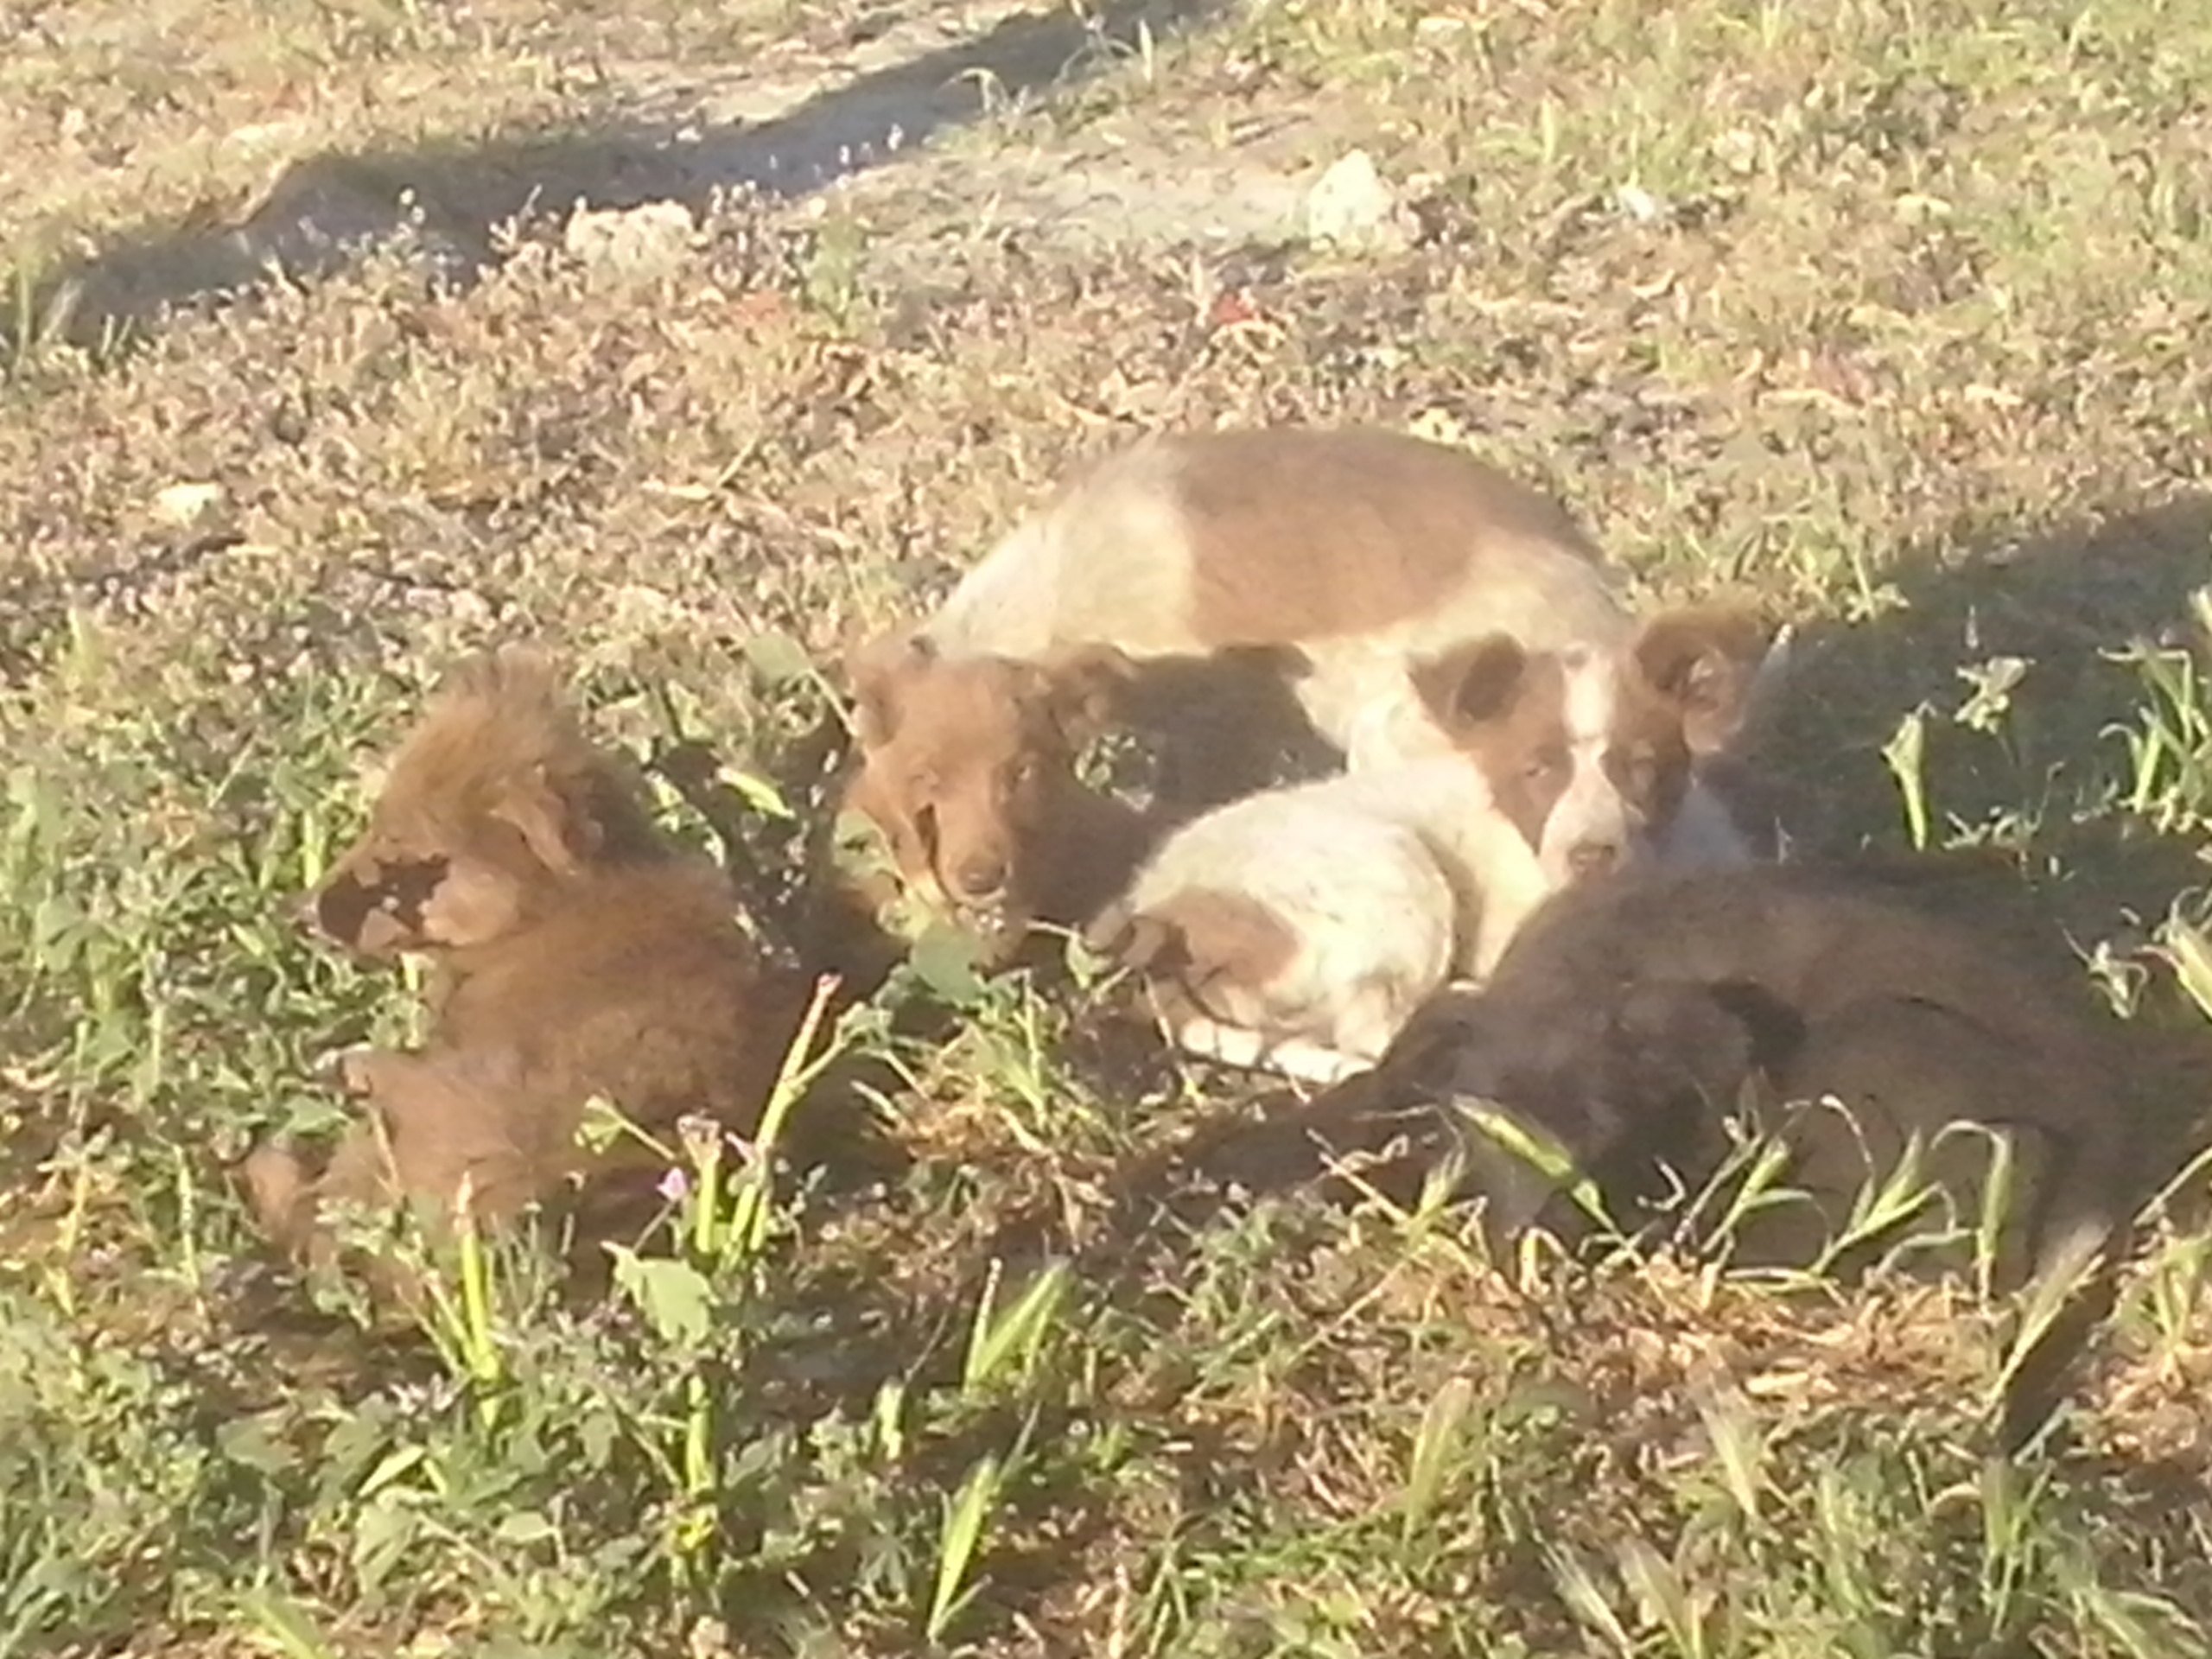 PAWS puppies lazing in the sun